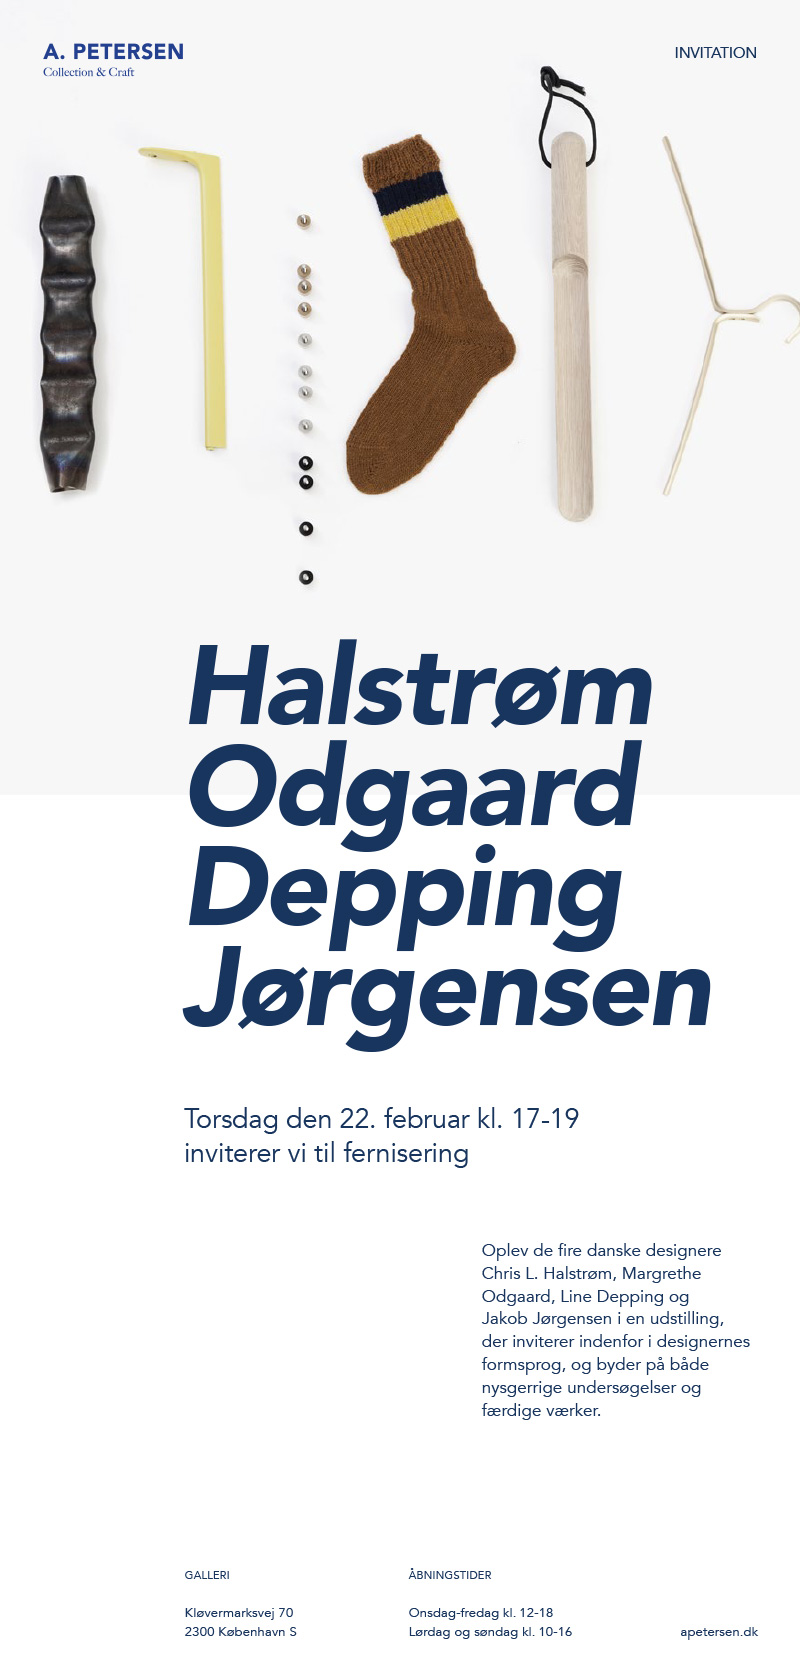 / 2018 - February /  From February 23rd - May 27th I am part of the exhibition HALSTRØM ODGAARD DEPPING JØRGENSEN at A. Petersen in Copenhagen